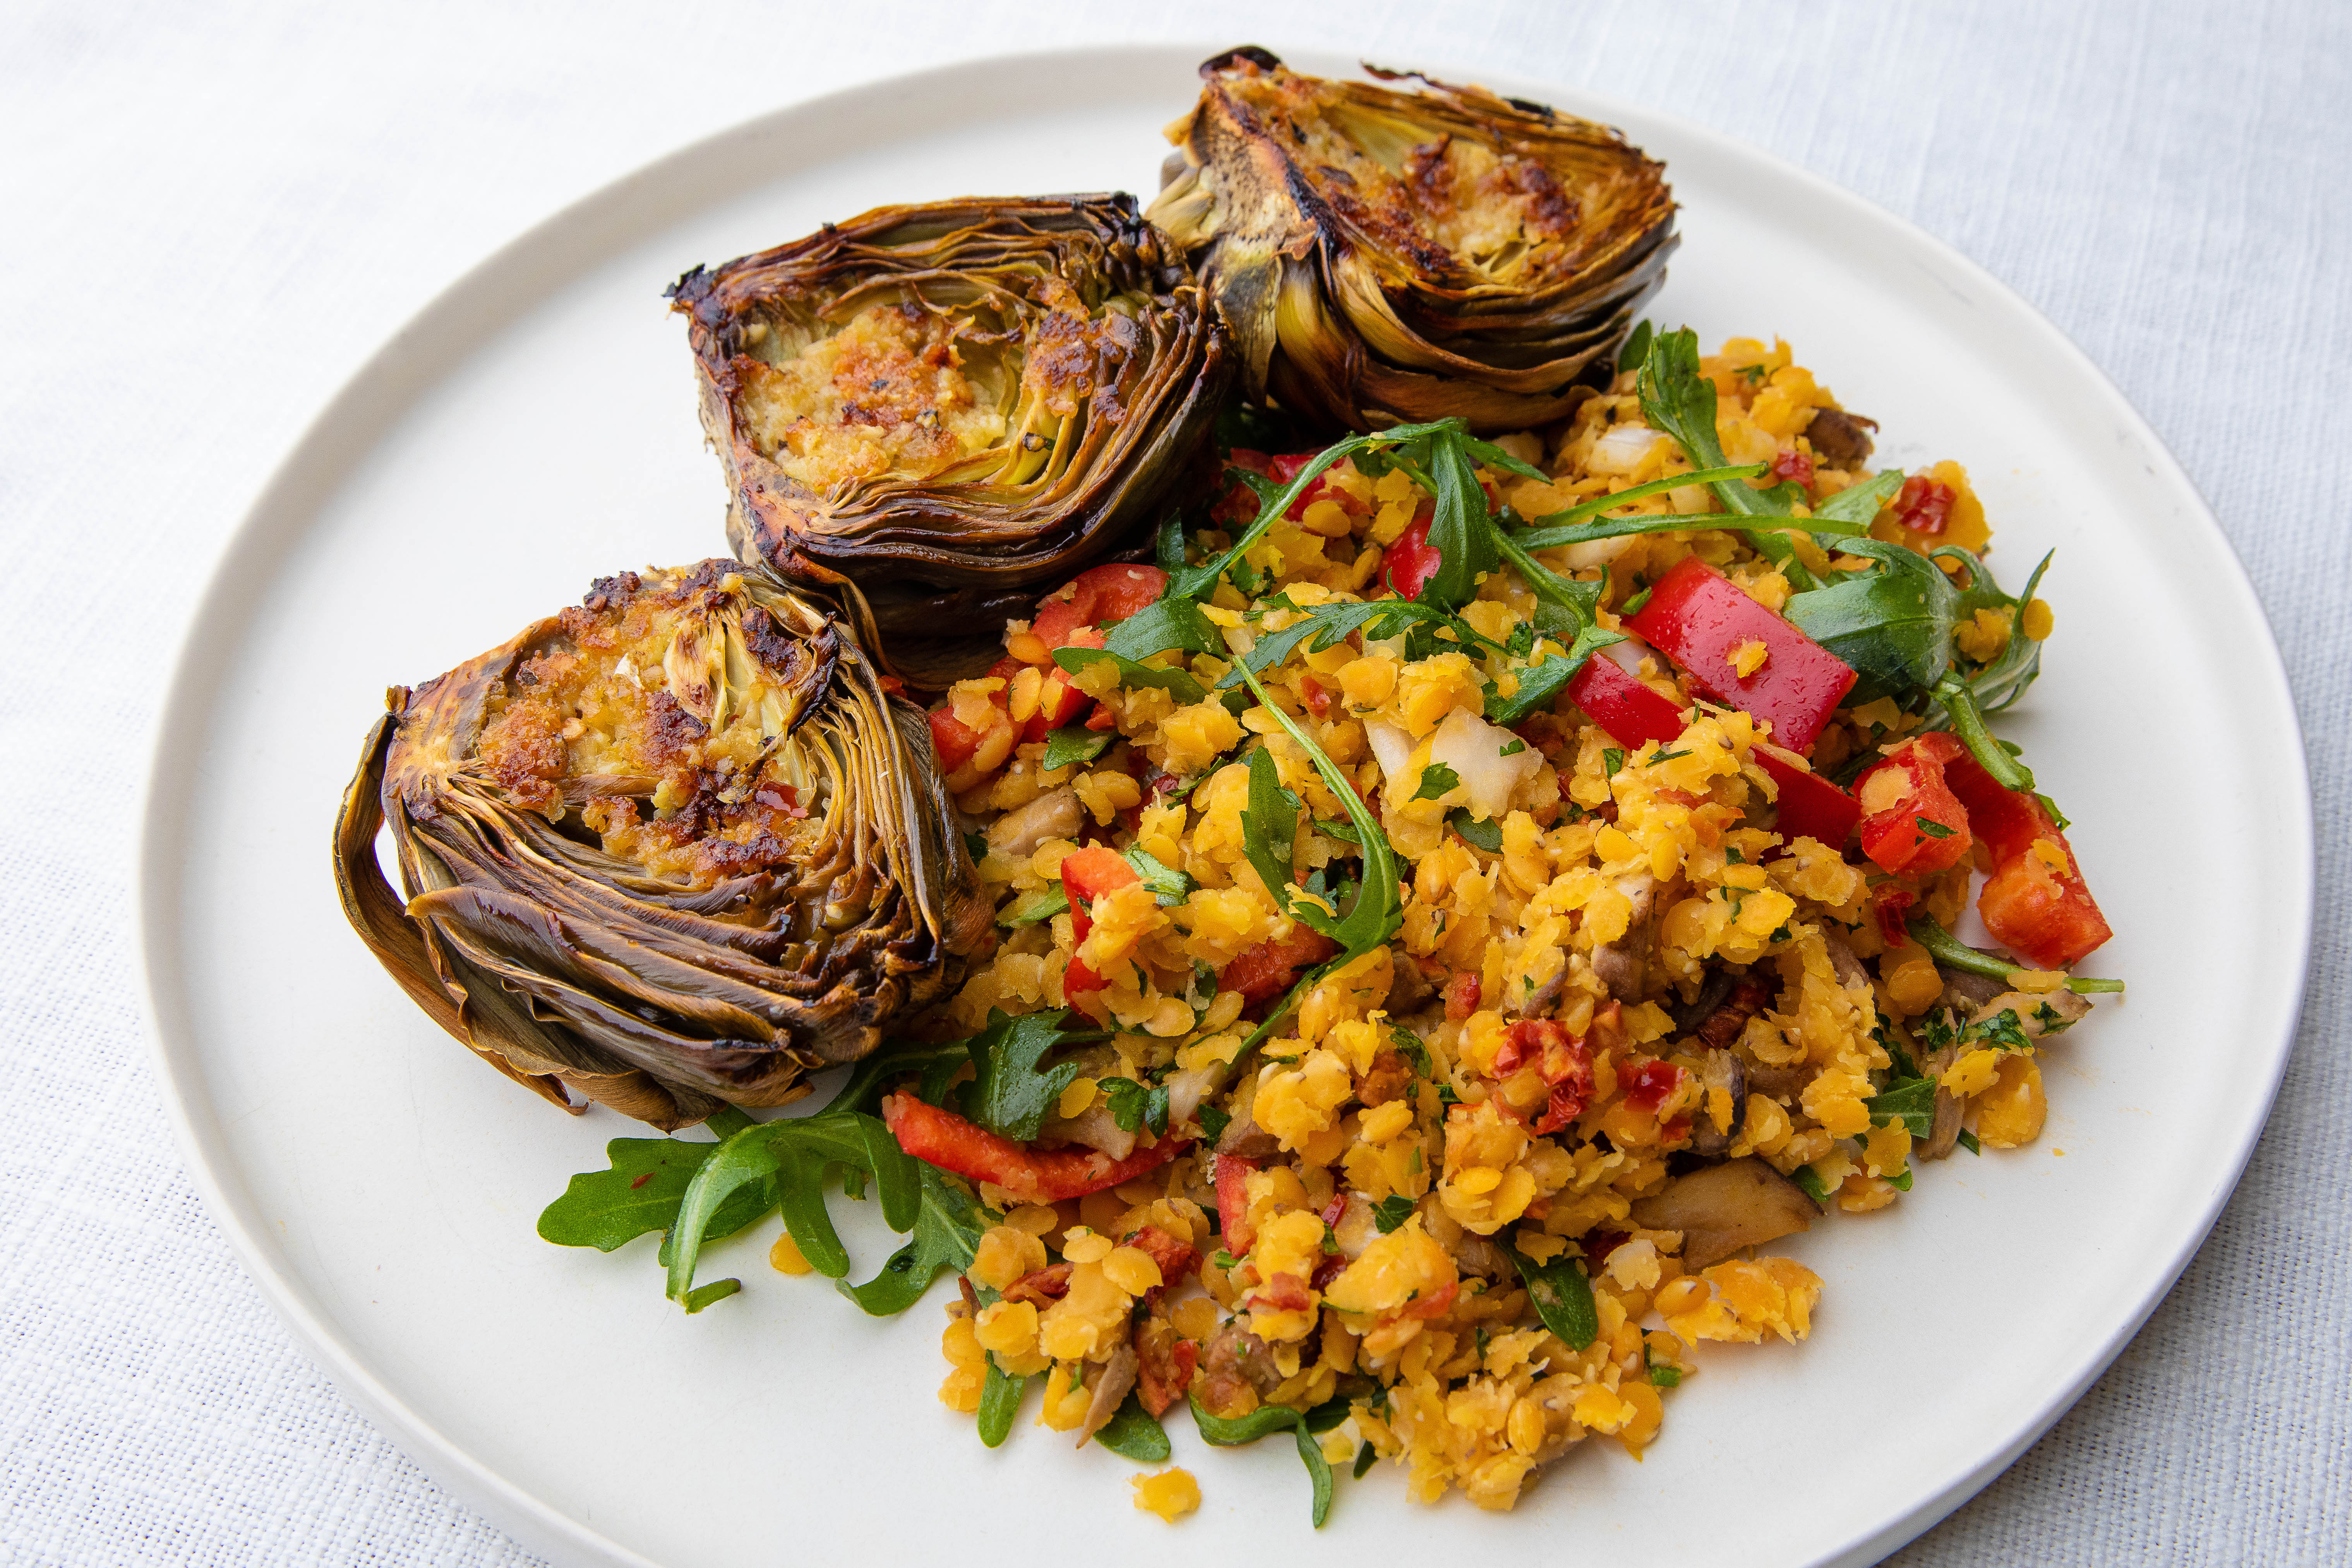 Warm salad with lentils, mushrooms, vegetables and grilled artichokes